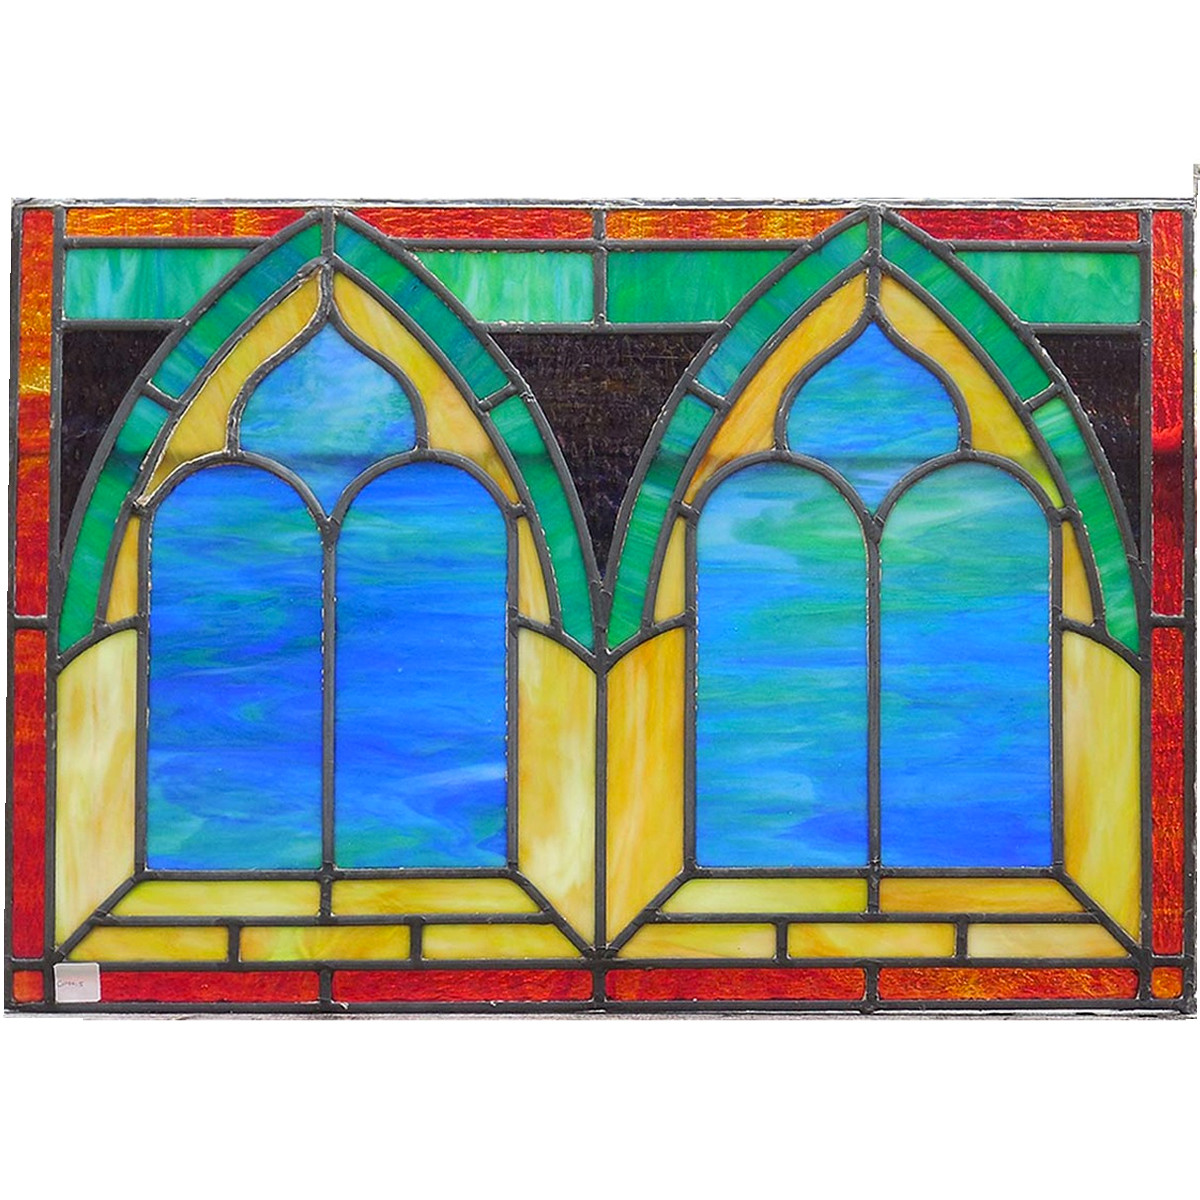 G14015 - Antique Ecclesiastical Stained Glass Window